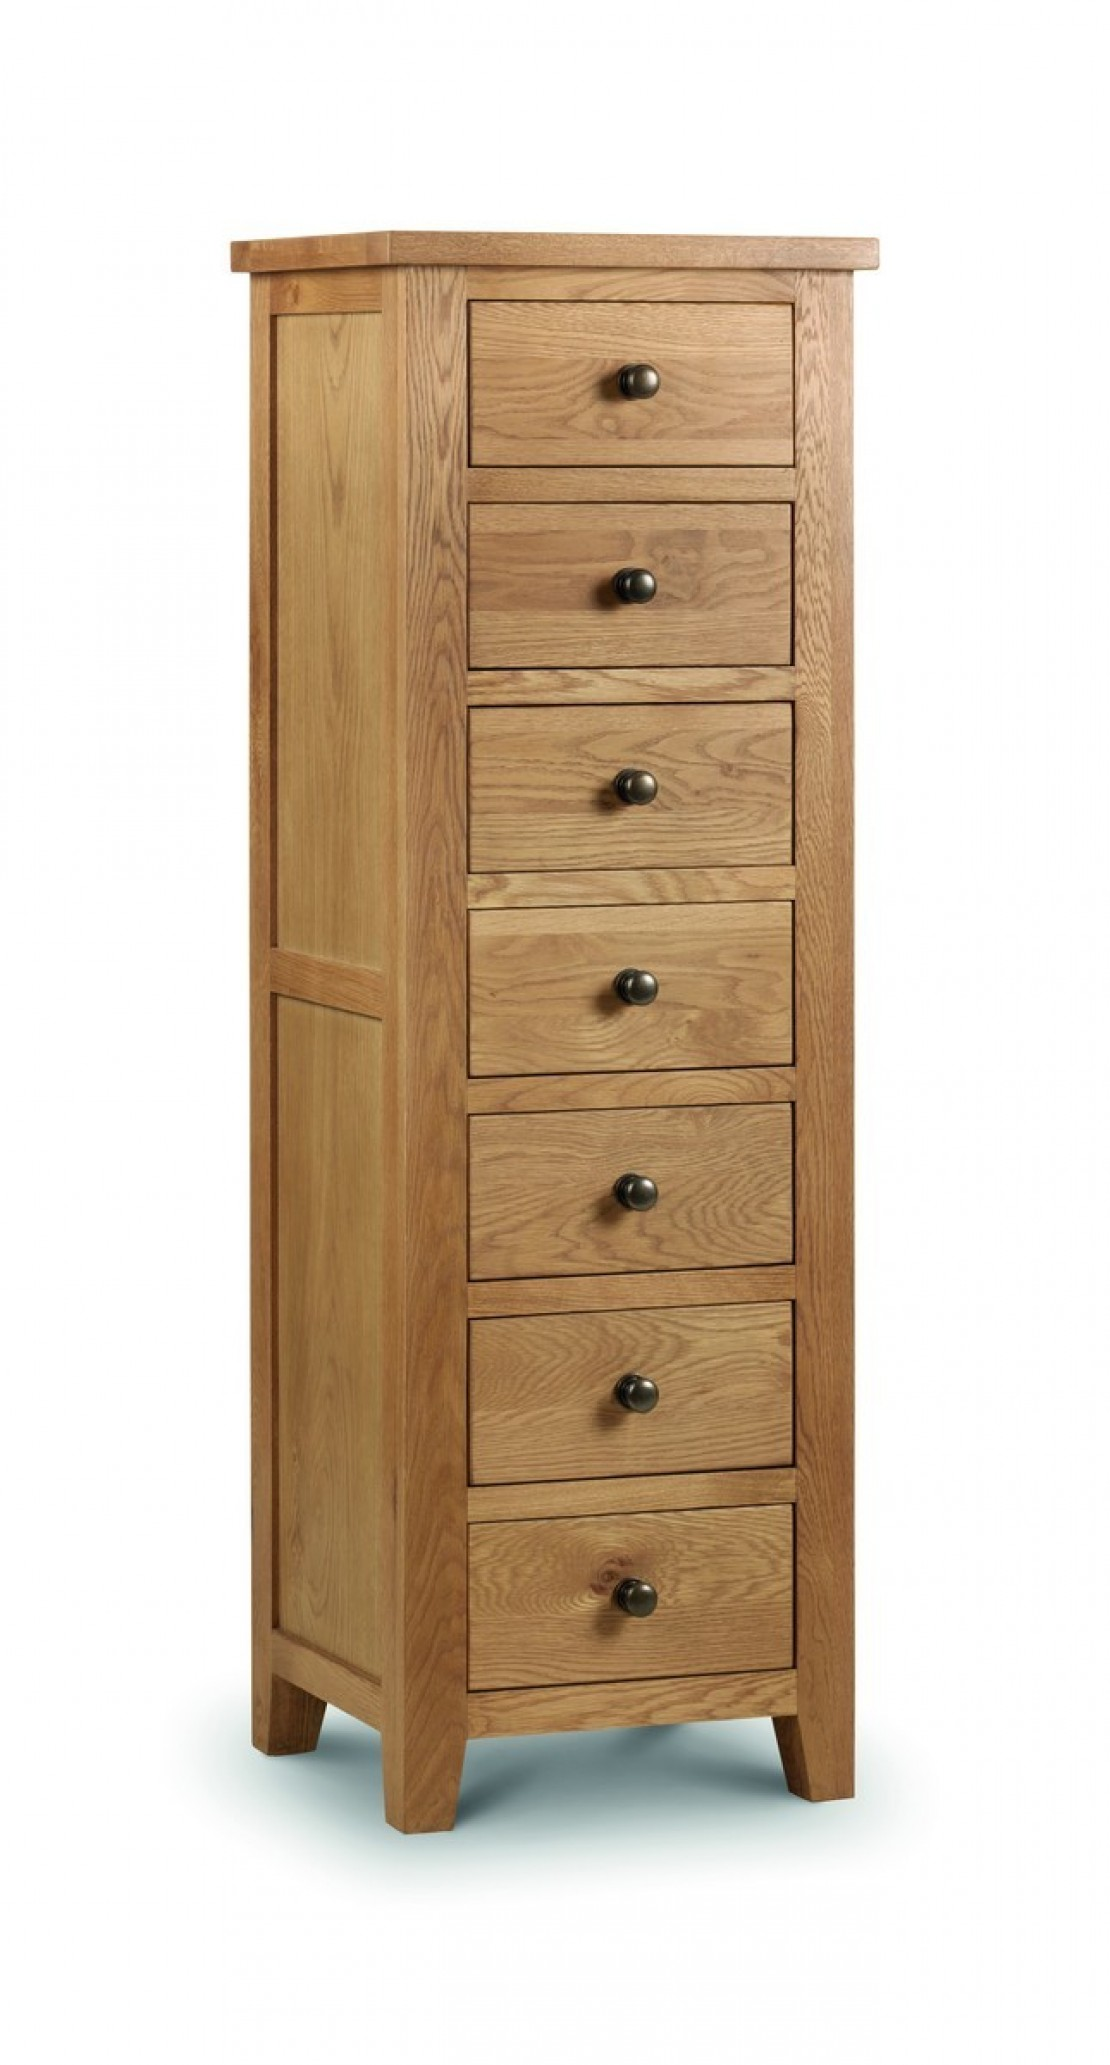 /_images/product-photos/julian-bowen-marlborough-7-drawer-chest-a.jpg